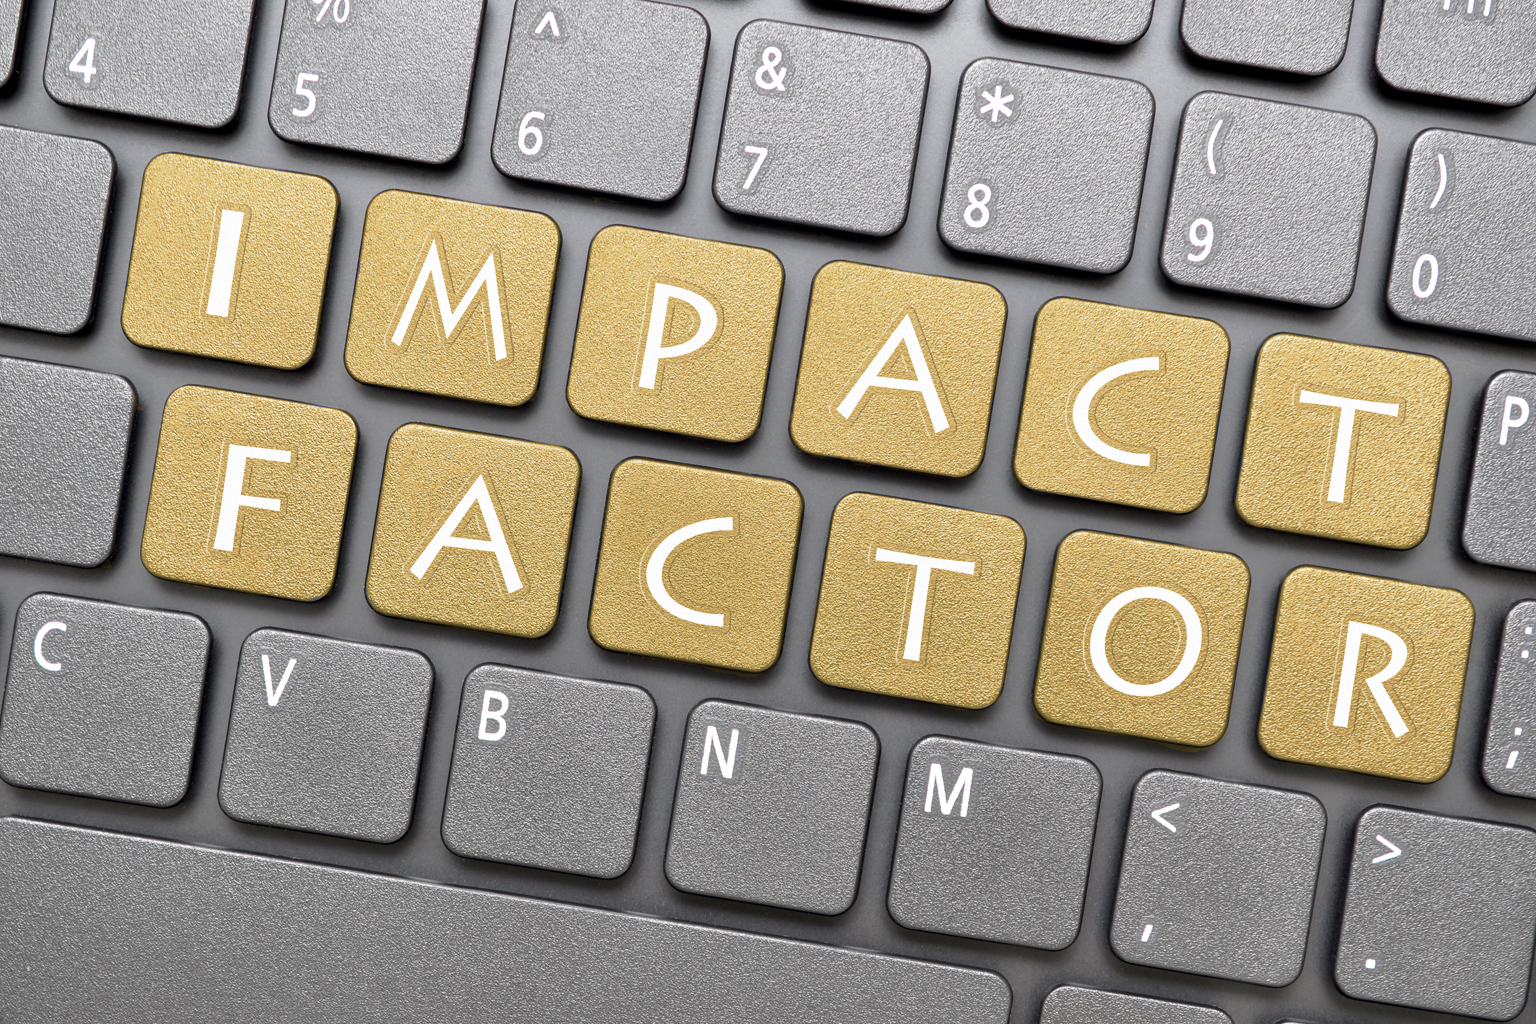 Keyboard with changes to middle letters written to say impact factor